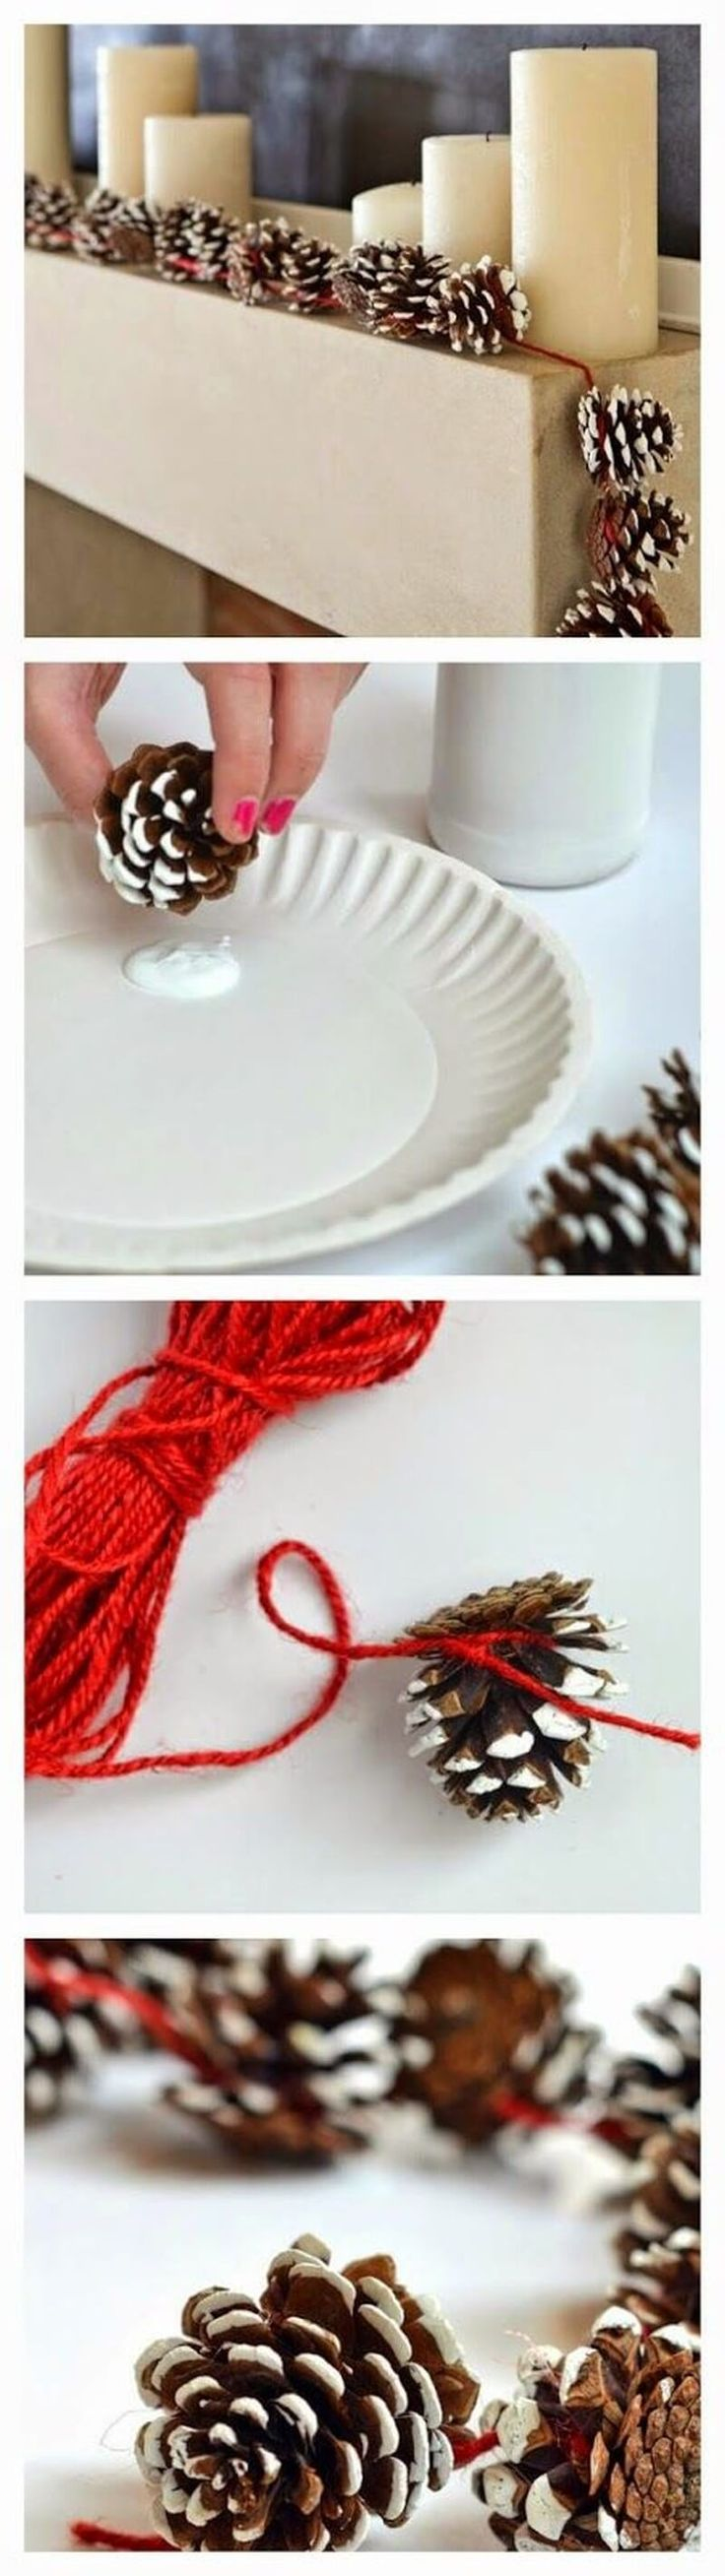 Stringed Pinecones With A Hint Of Snow